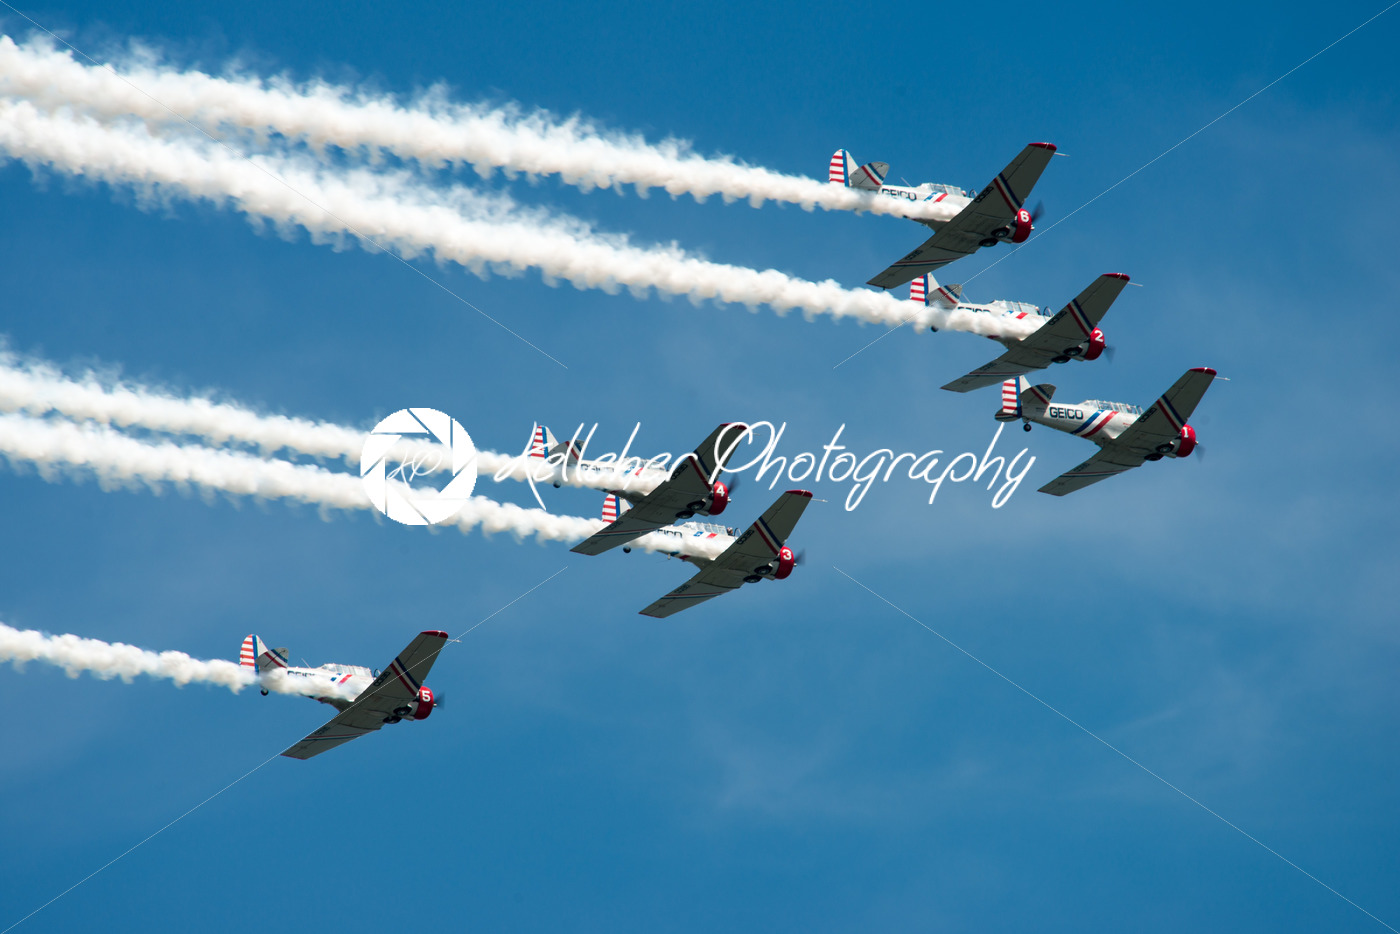 ATLANTIC CITY, NJ – AUGUST 17: Geicko Skytypers performing at the Annual Atlantic City Air Show on August 17, 2016 - Kelleher Photography Store